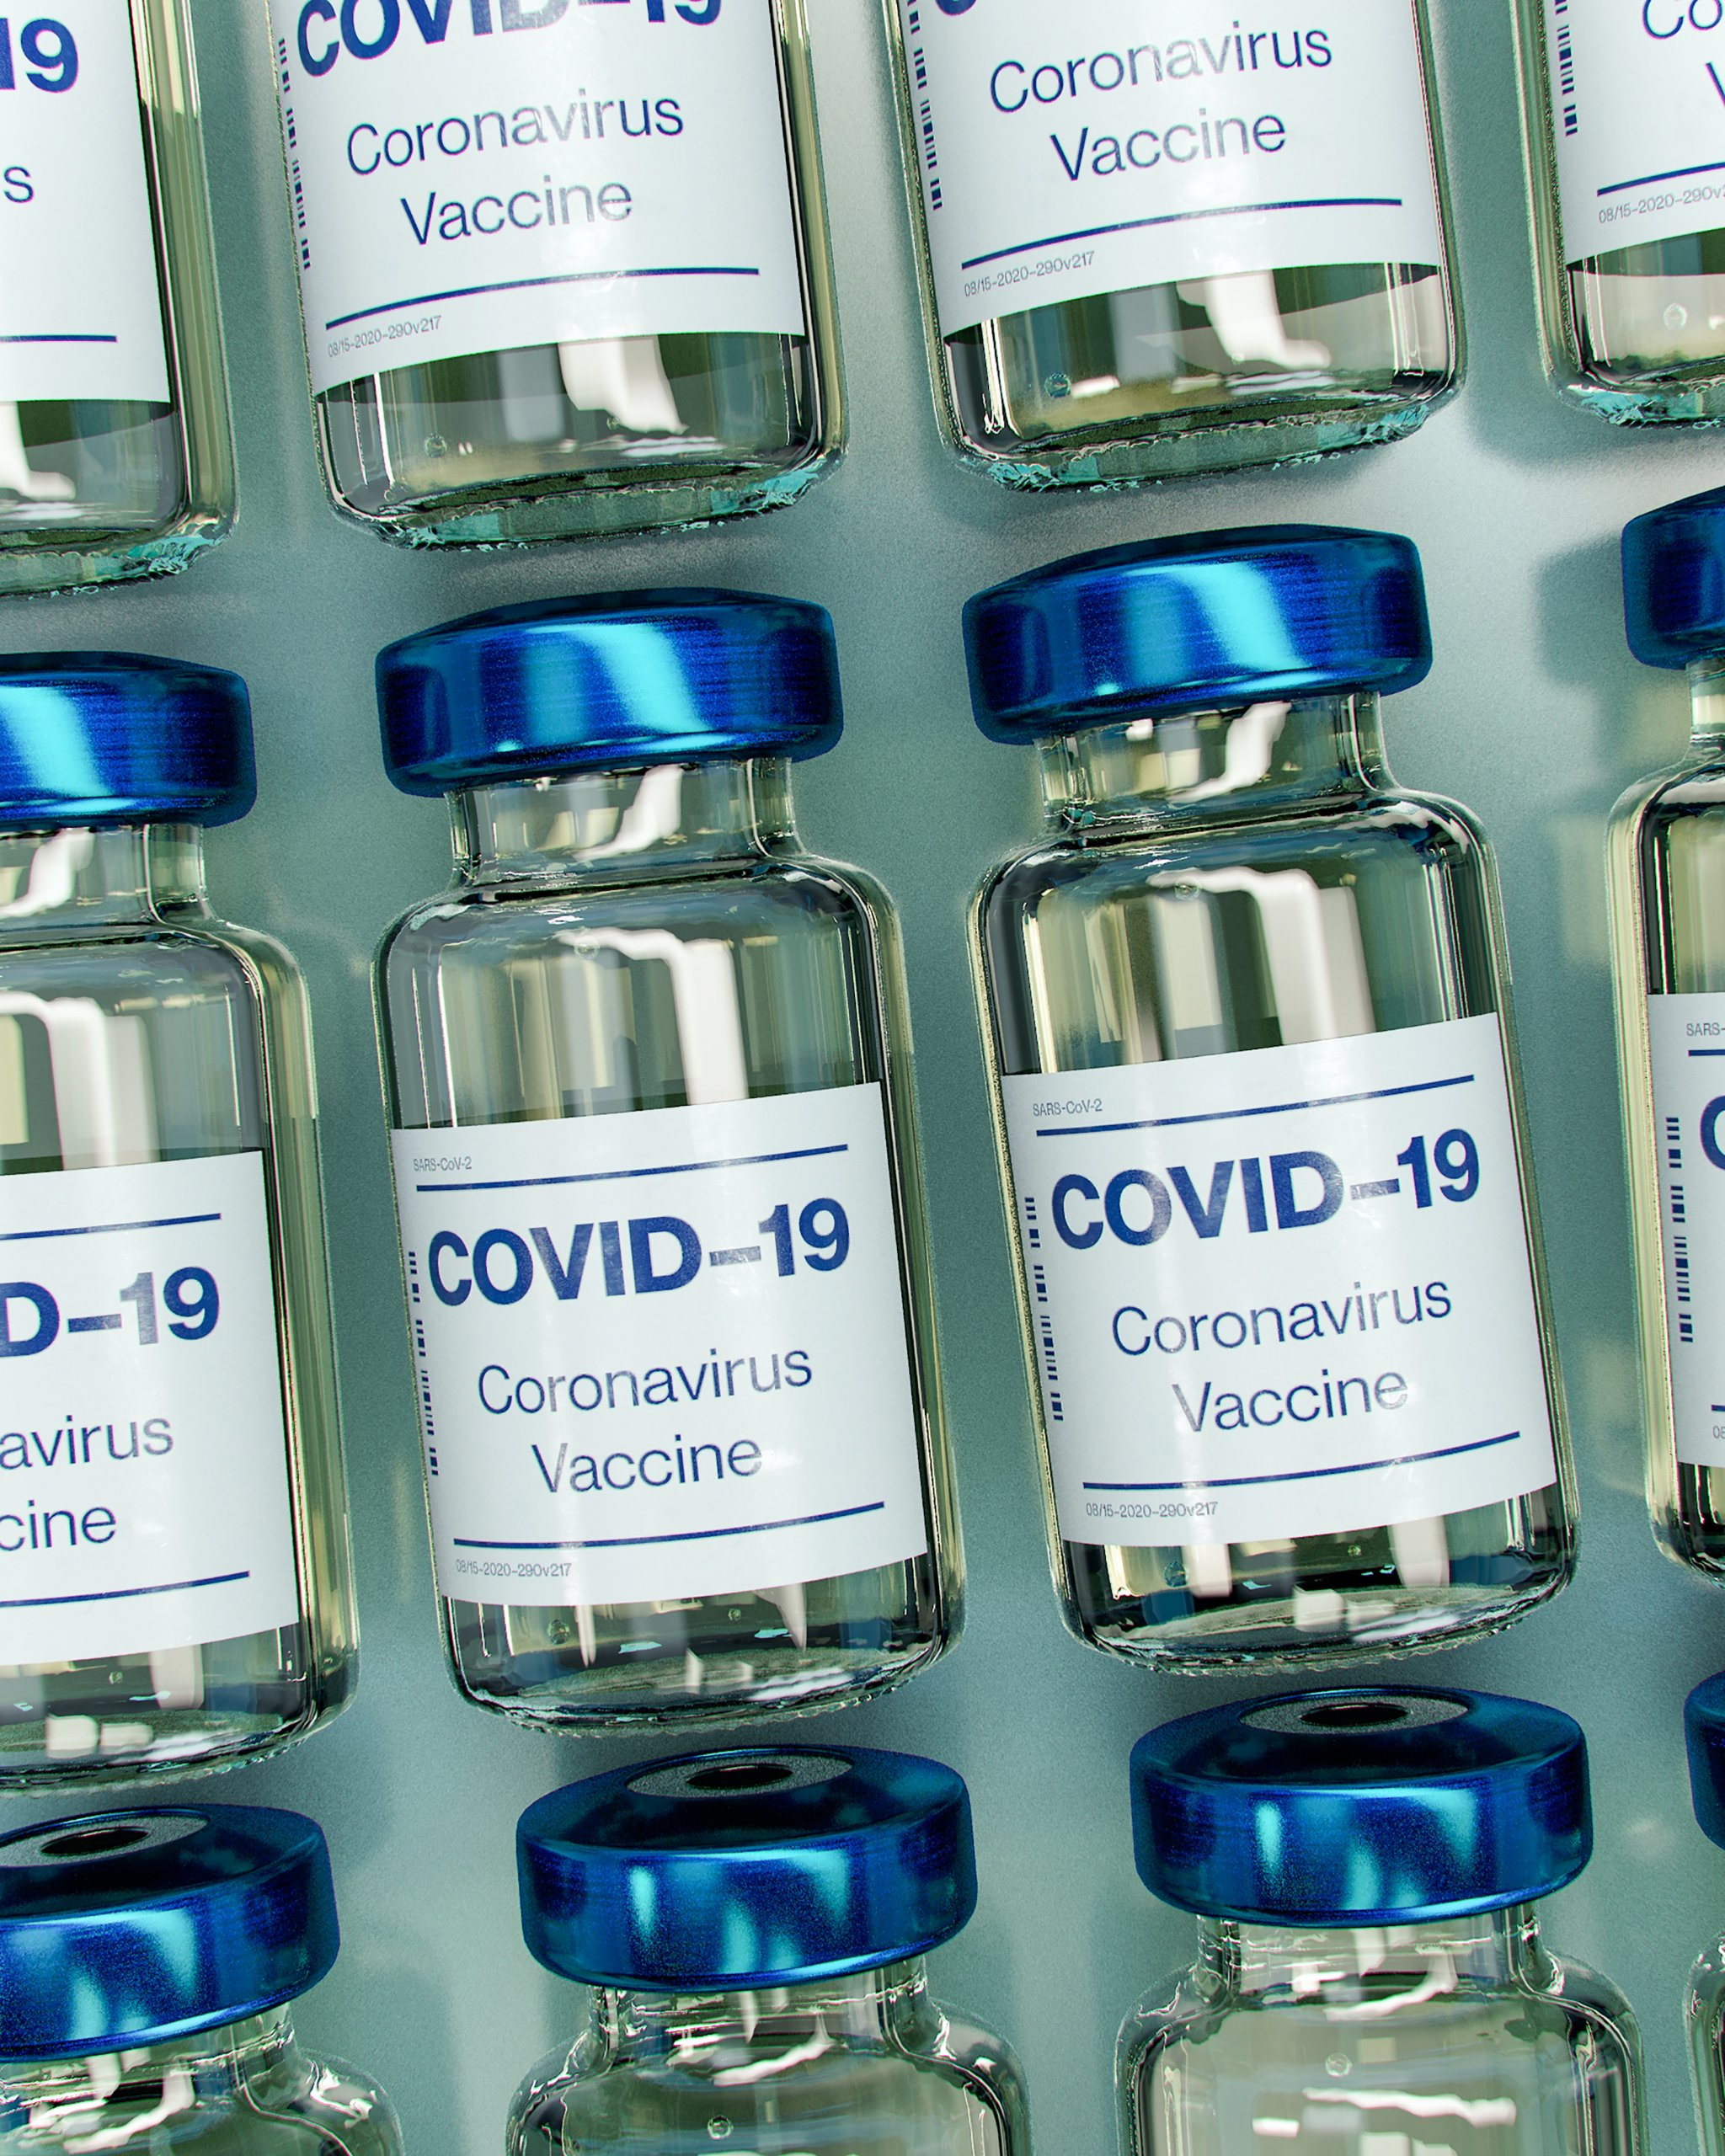 CONDUCTING A VIRTUAL PUBLIC DELIBERATION ON COVID-19 VACCINE DISTRIBUTION: SAMPLE GUIDANCE & TOOLS